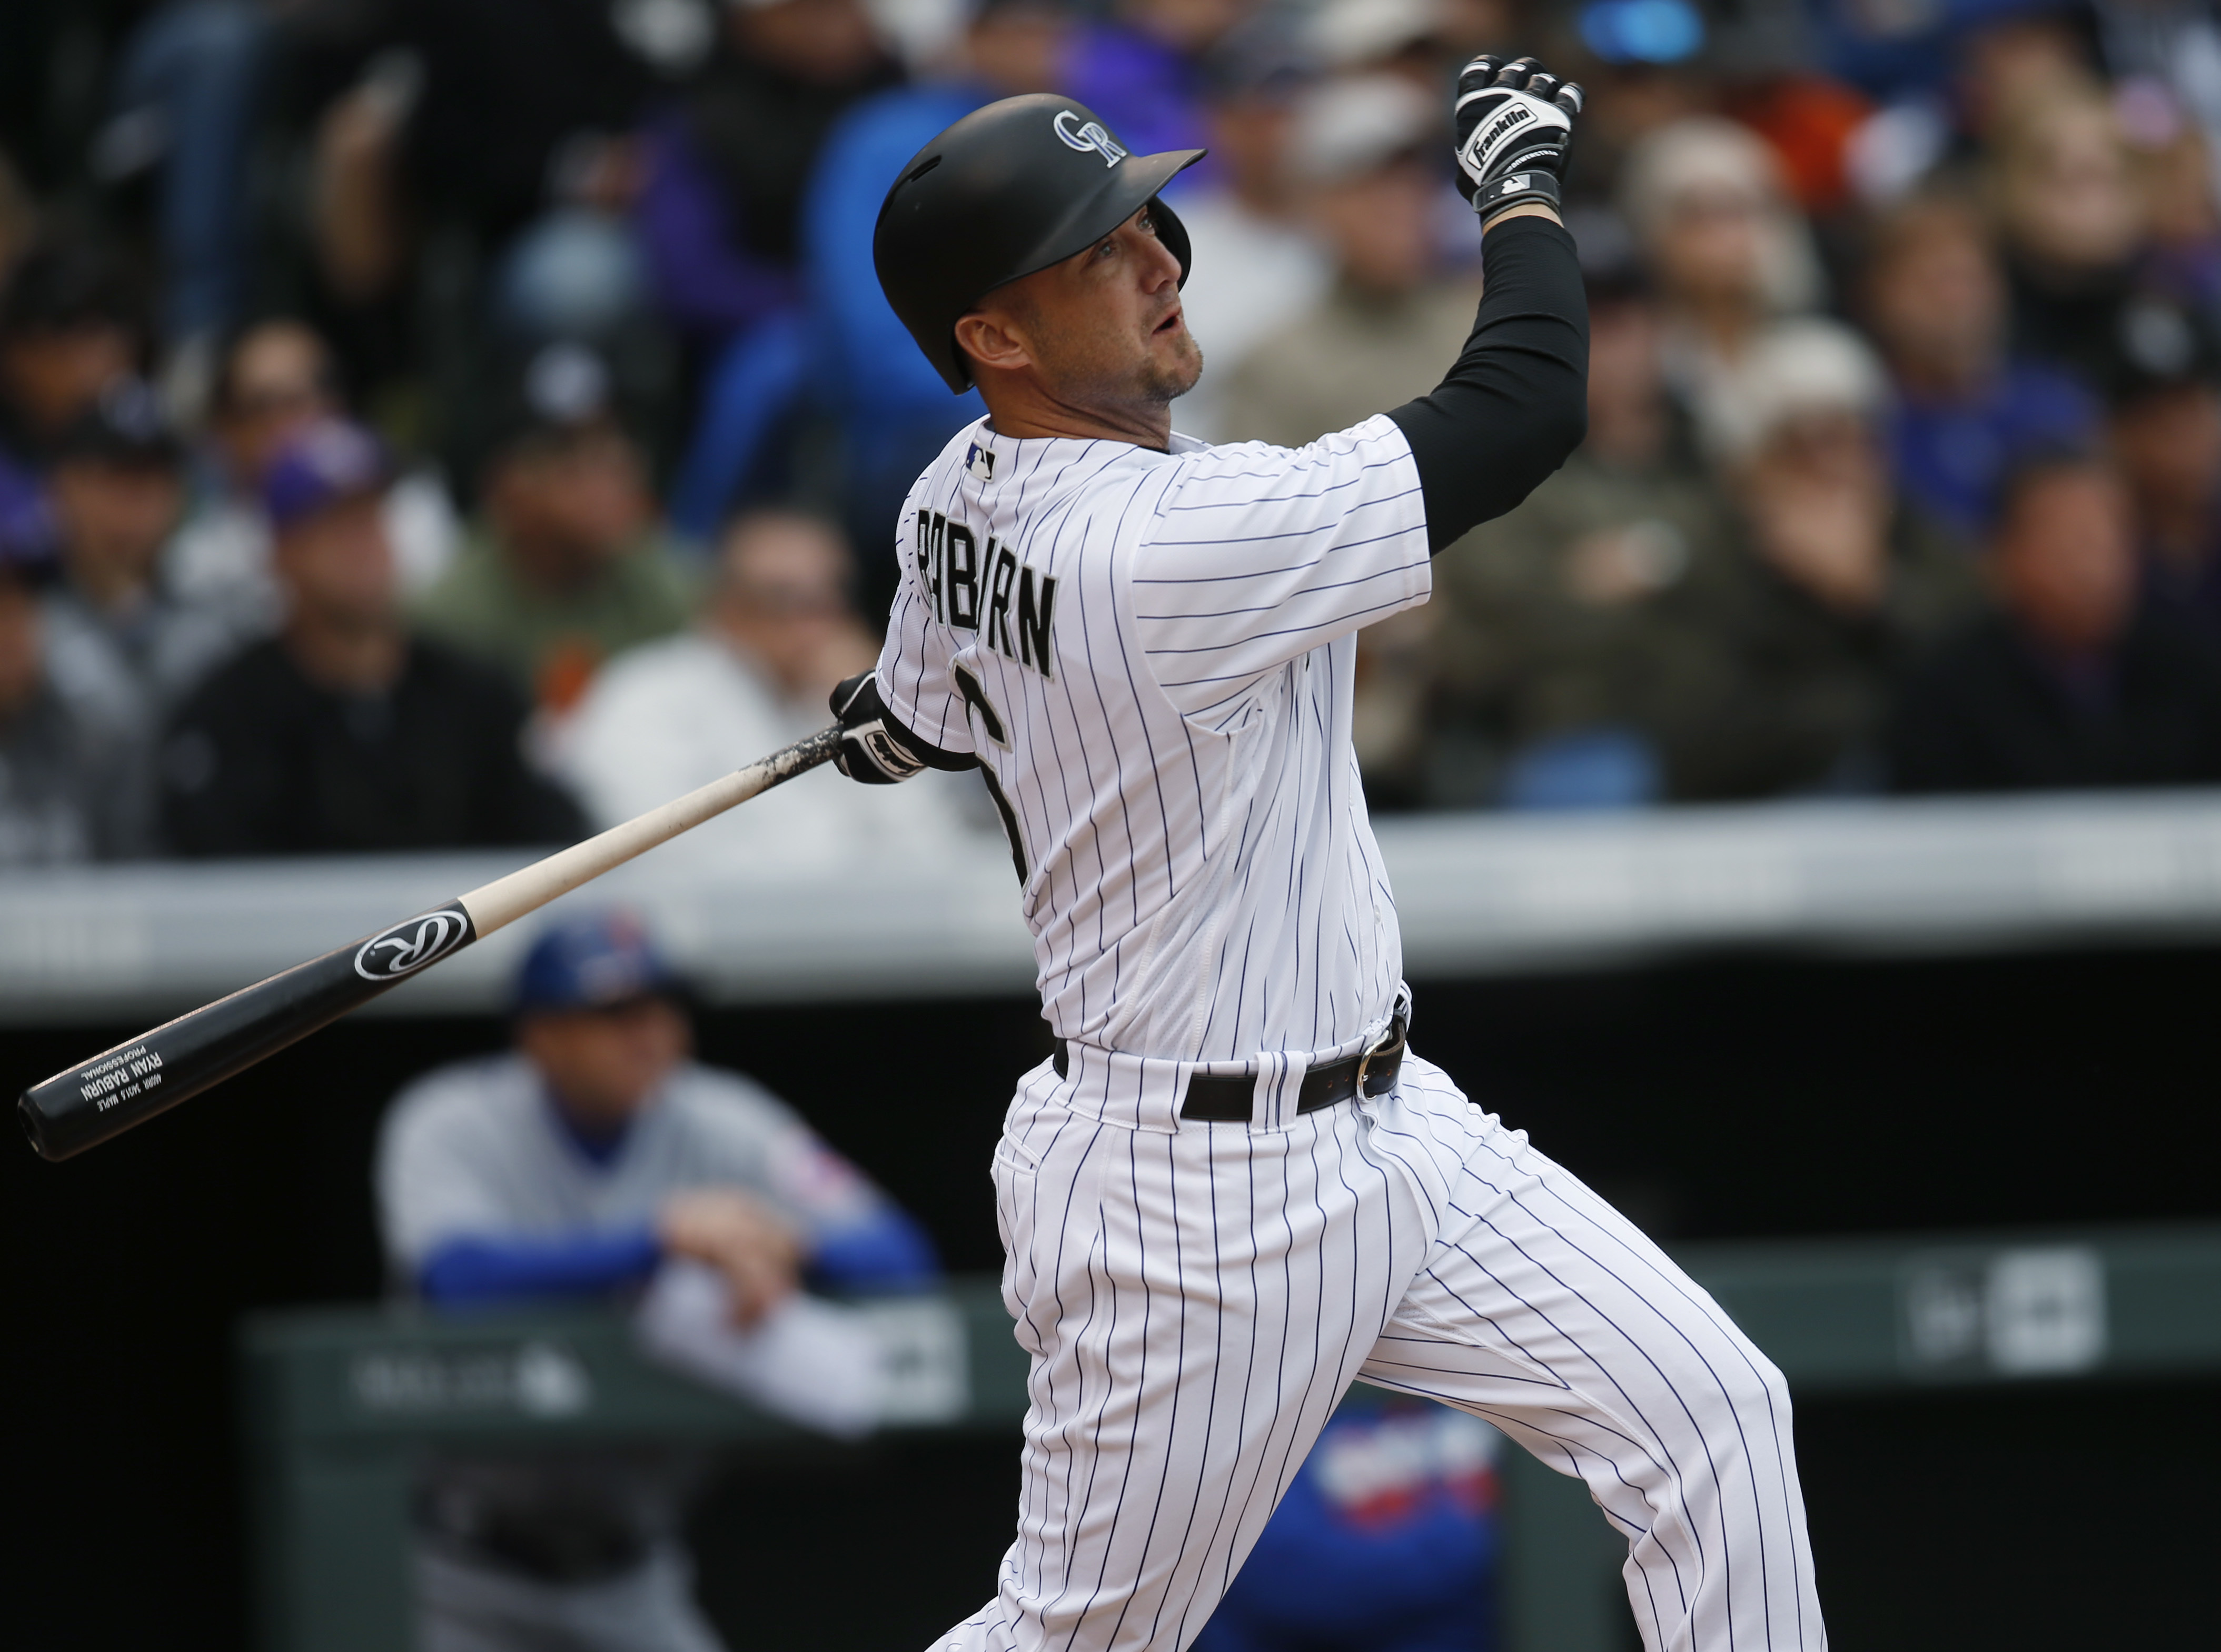 Colorado Rockies pinch hitter Ryan Raburn follows the flight of his two-run home run off New York Mets relief pitcher Jim Henderson in the seventh inning of a baseball game Sunday, May 15, 2016, in Denver. (AP Photo/David Zalubowski)